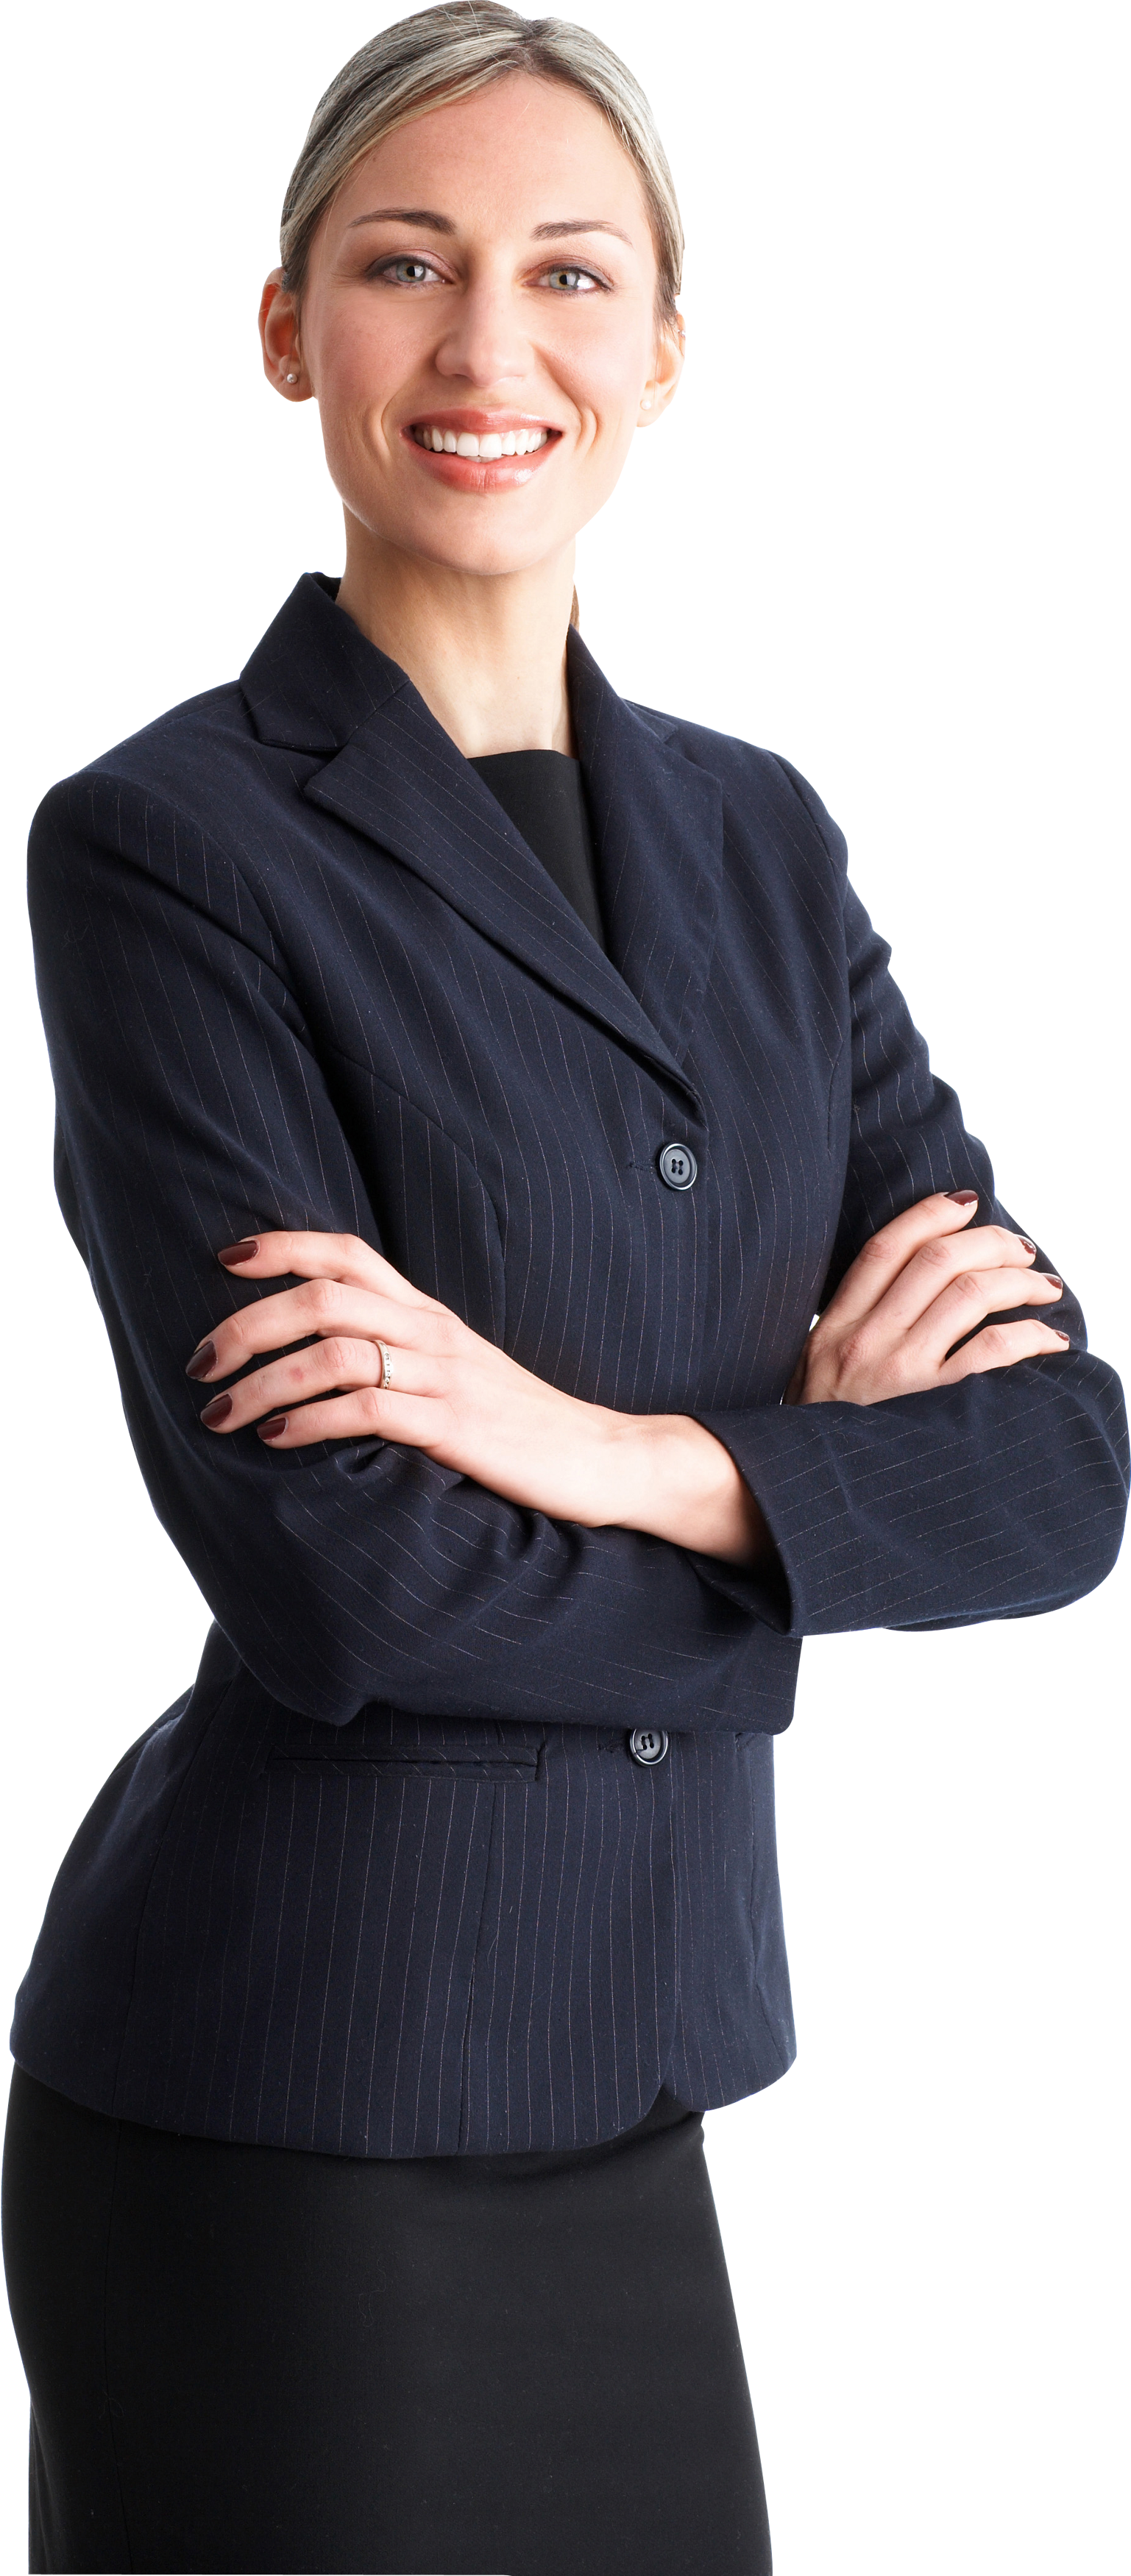 Business woman png. Girl image